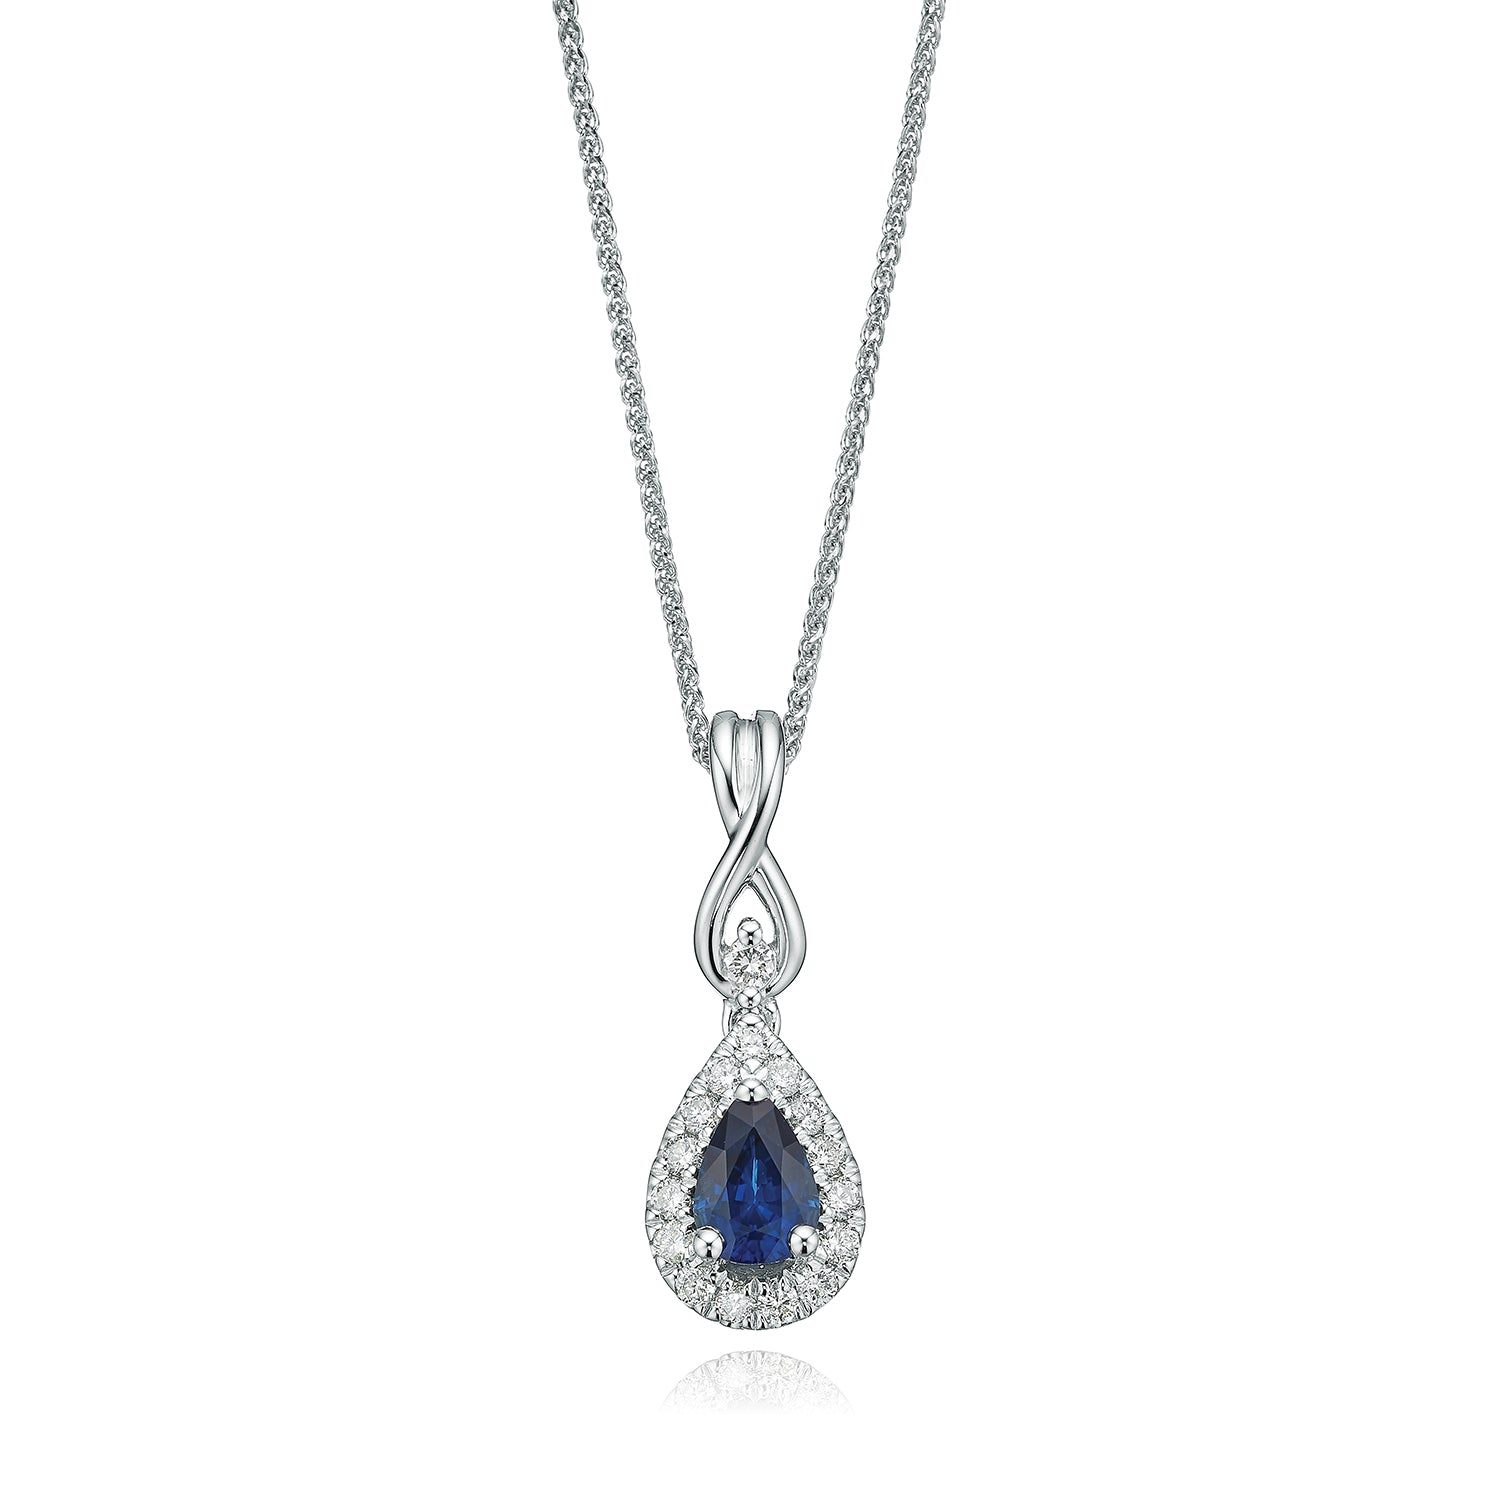 Vera Wang Love 18ct White Gold Pear Cut Sapphire with 0.16 CARAT tw of Diamond Pendant